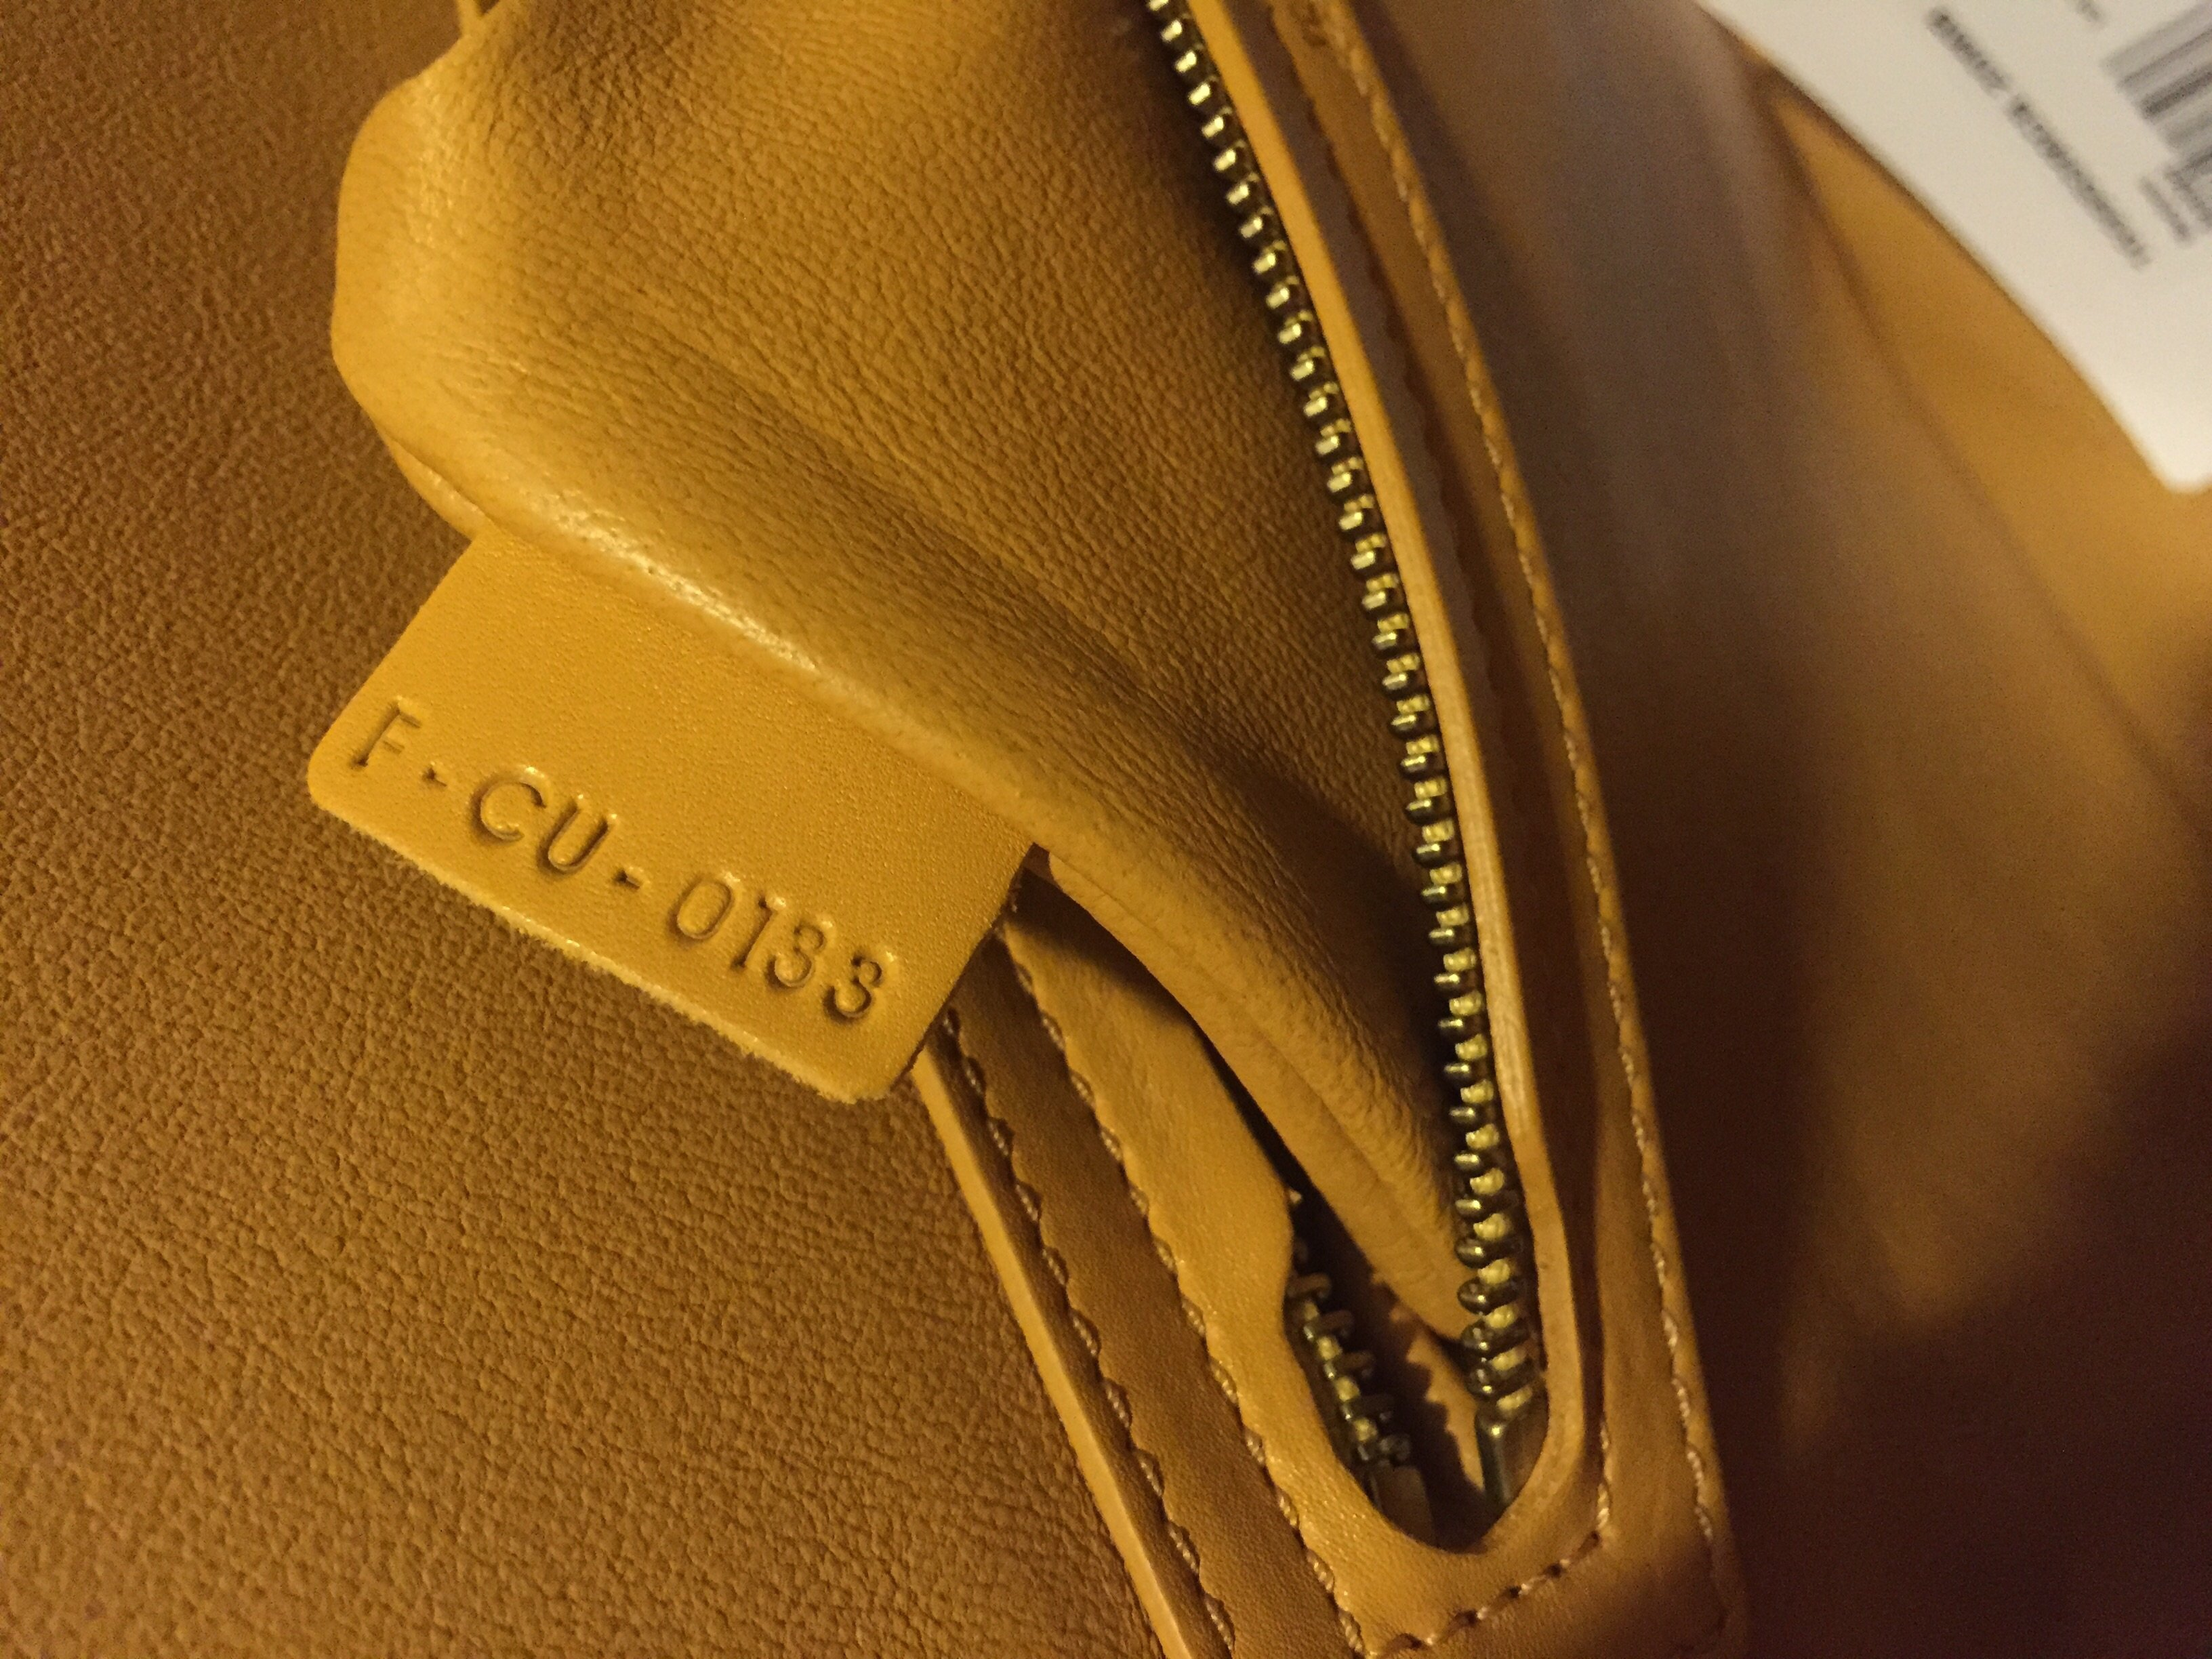 celine nano bag - Celine Bag Prices | Bragmybag